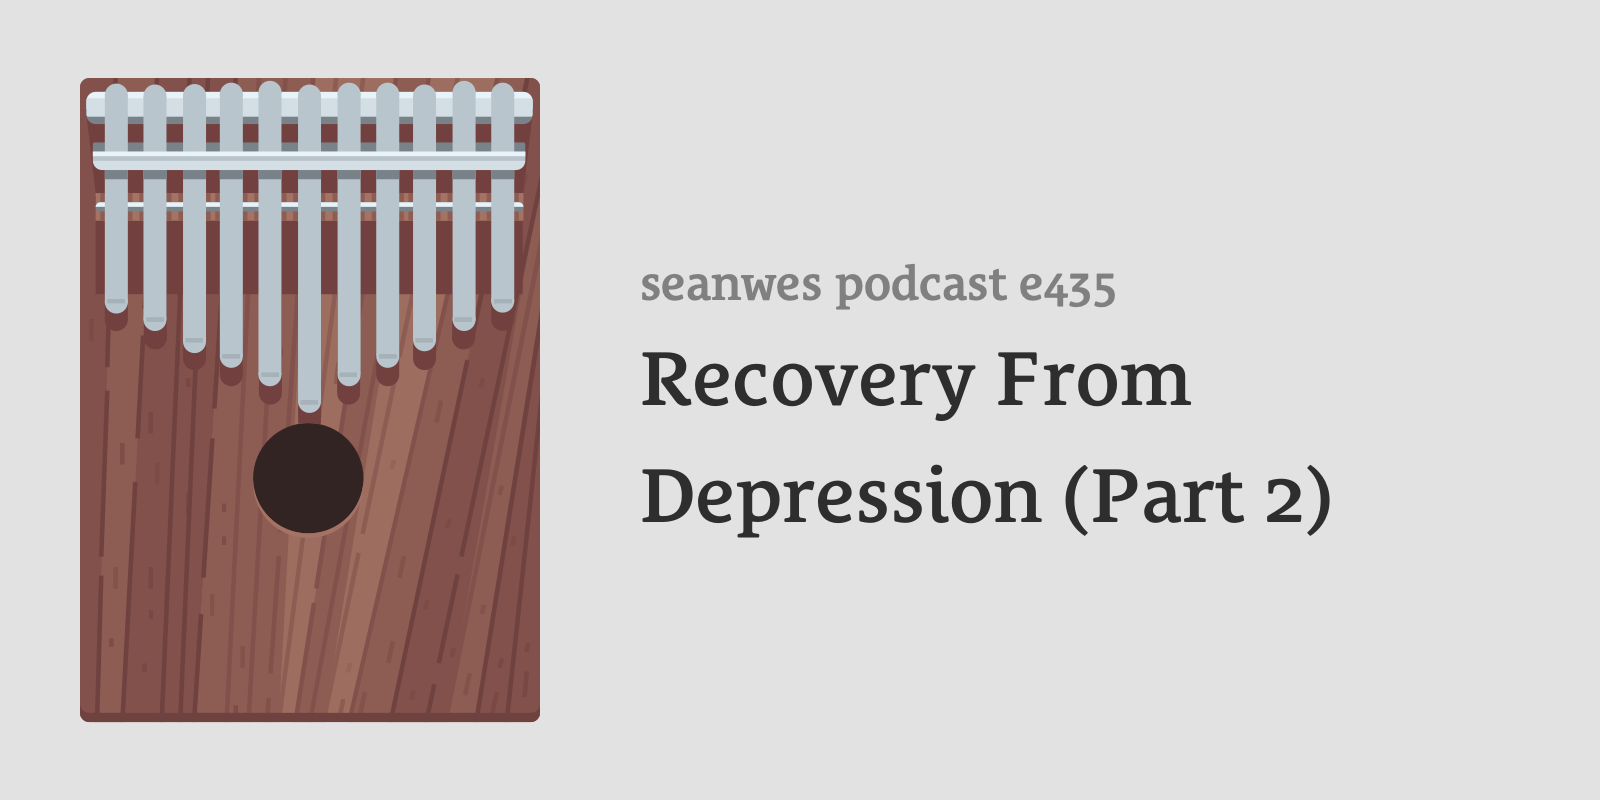 seanwes podcast 435: Recovery From Depression (Part 2)